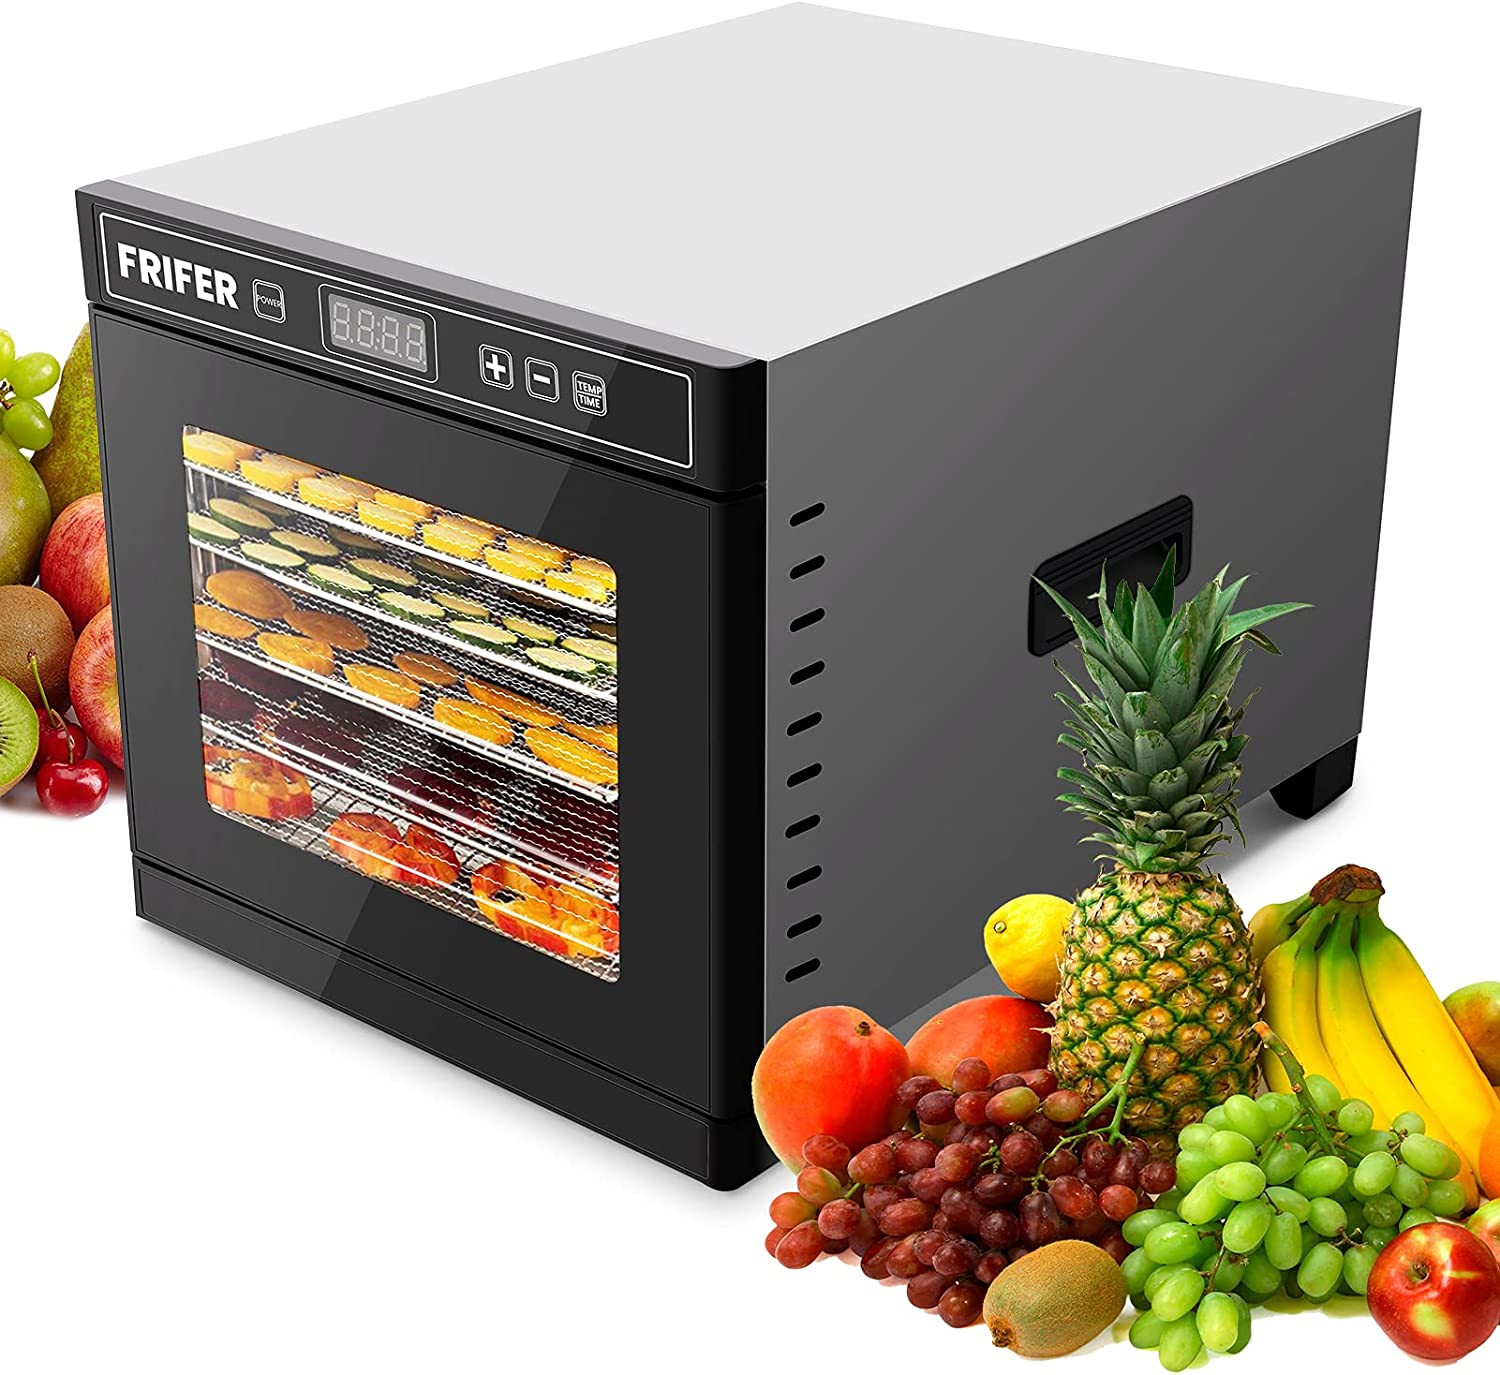 Frifer Food Dehydrator Machine Touch Panel with Timer and Thermostat Control   Commercial Dehydrator Machine   Better for Drying Fruit, Meat and Vegetables